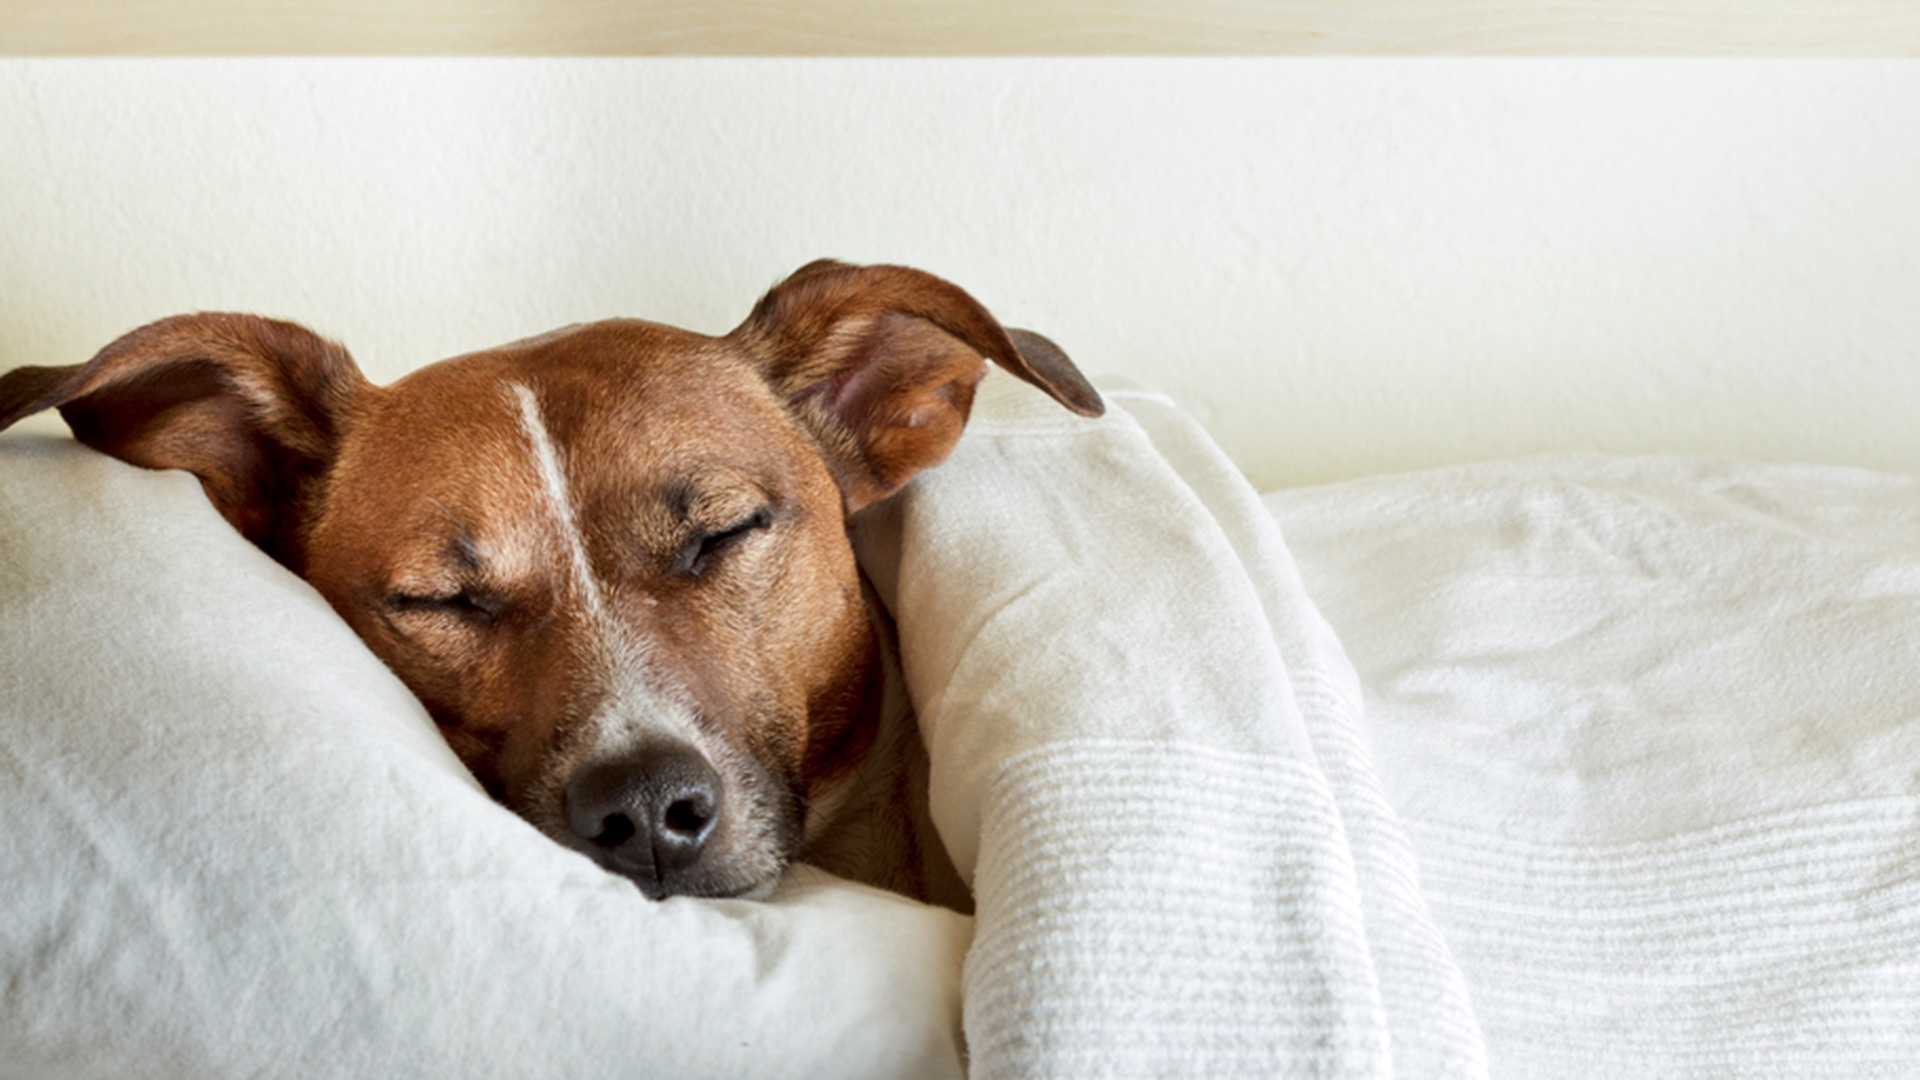 Want better sleep? Maybe let your dog in the bedroom after all